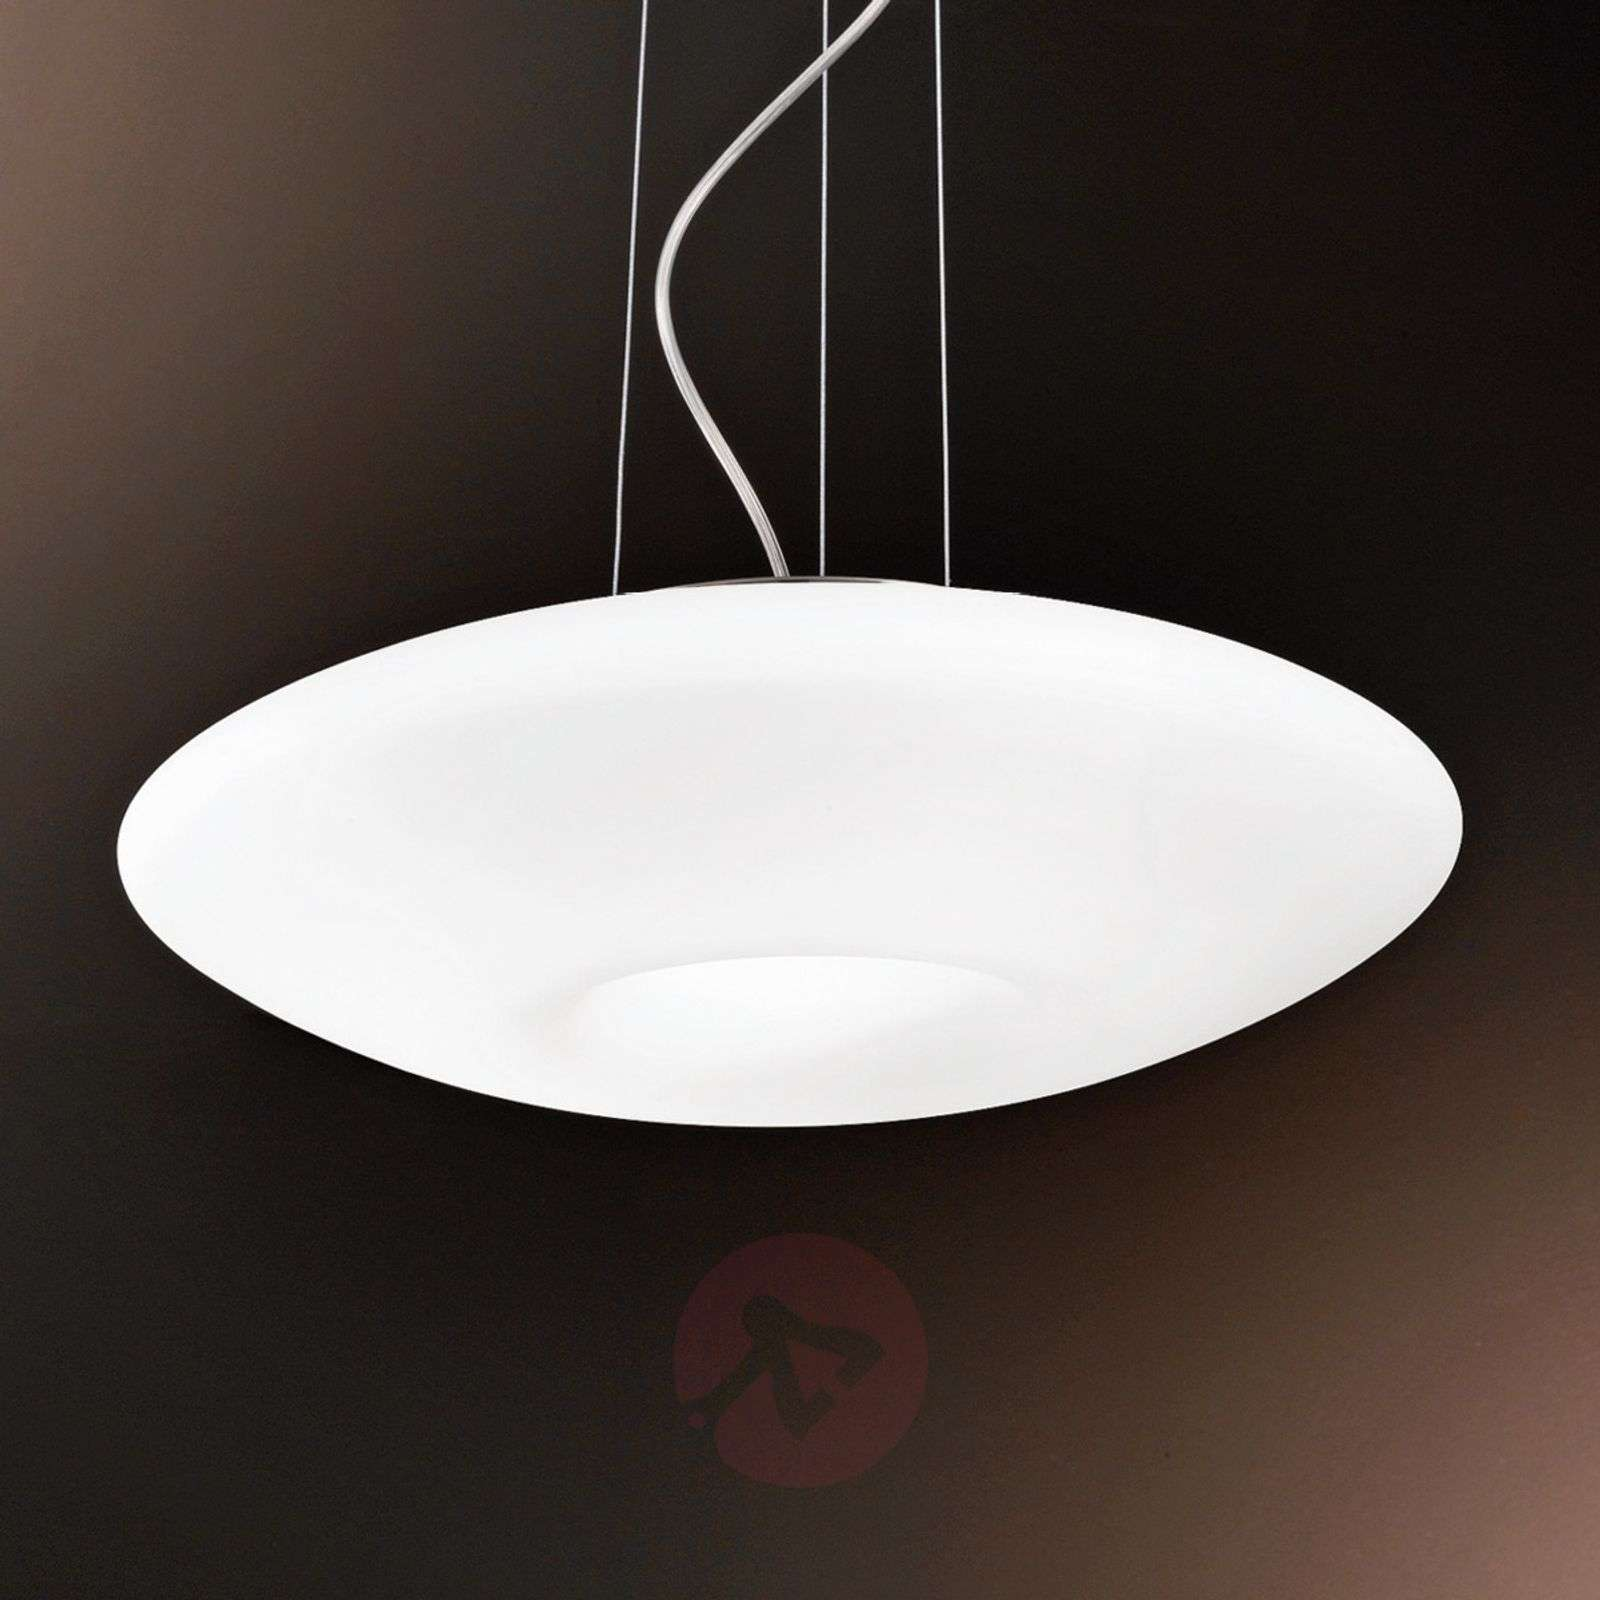 Malu Hanging Light Silk Matte-7254469-01